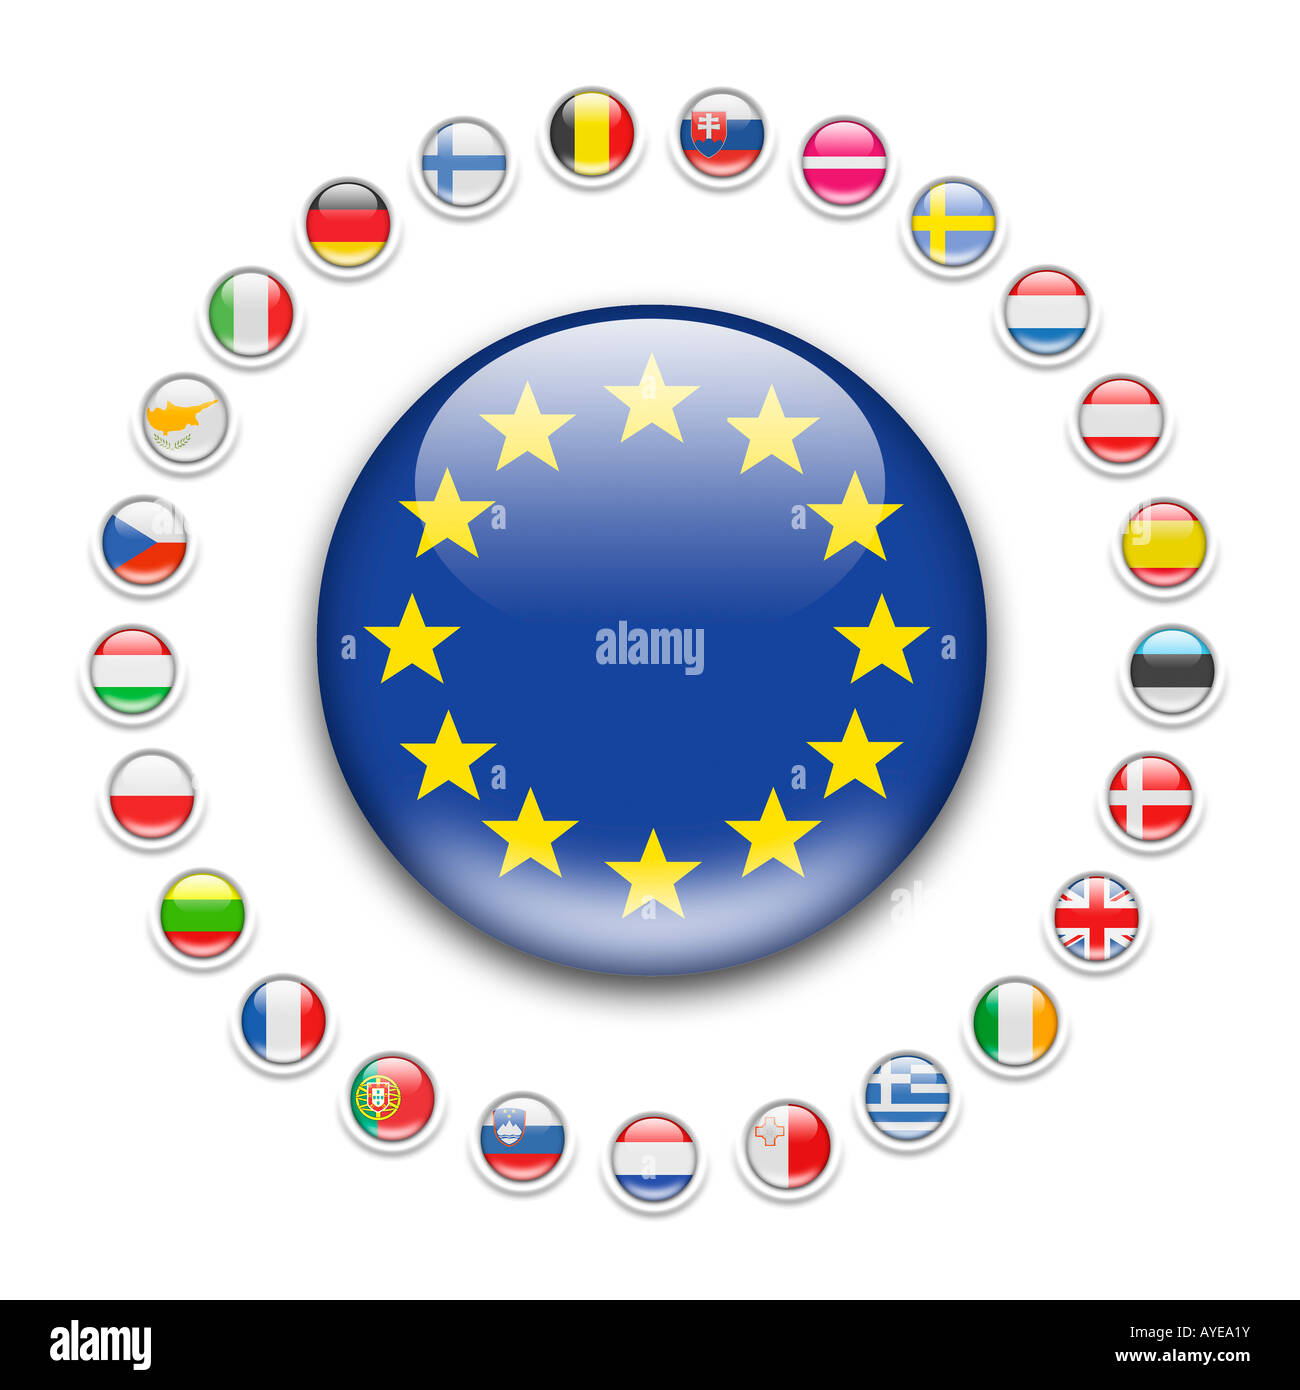 EU - European Union flag - Stock Image